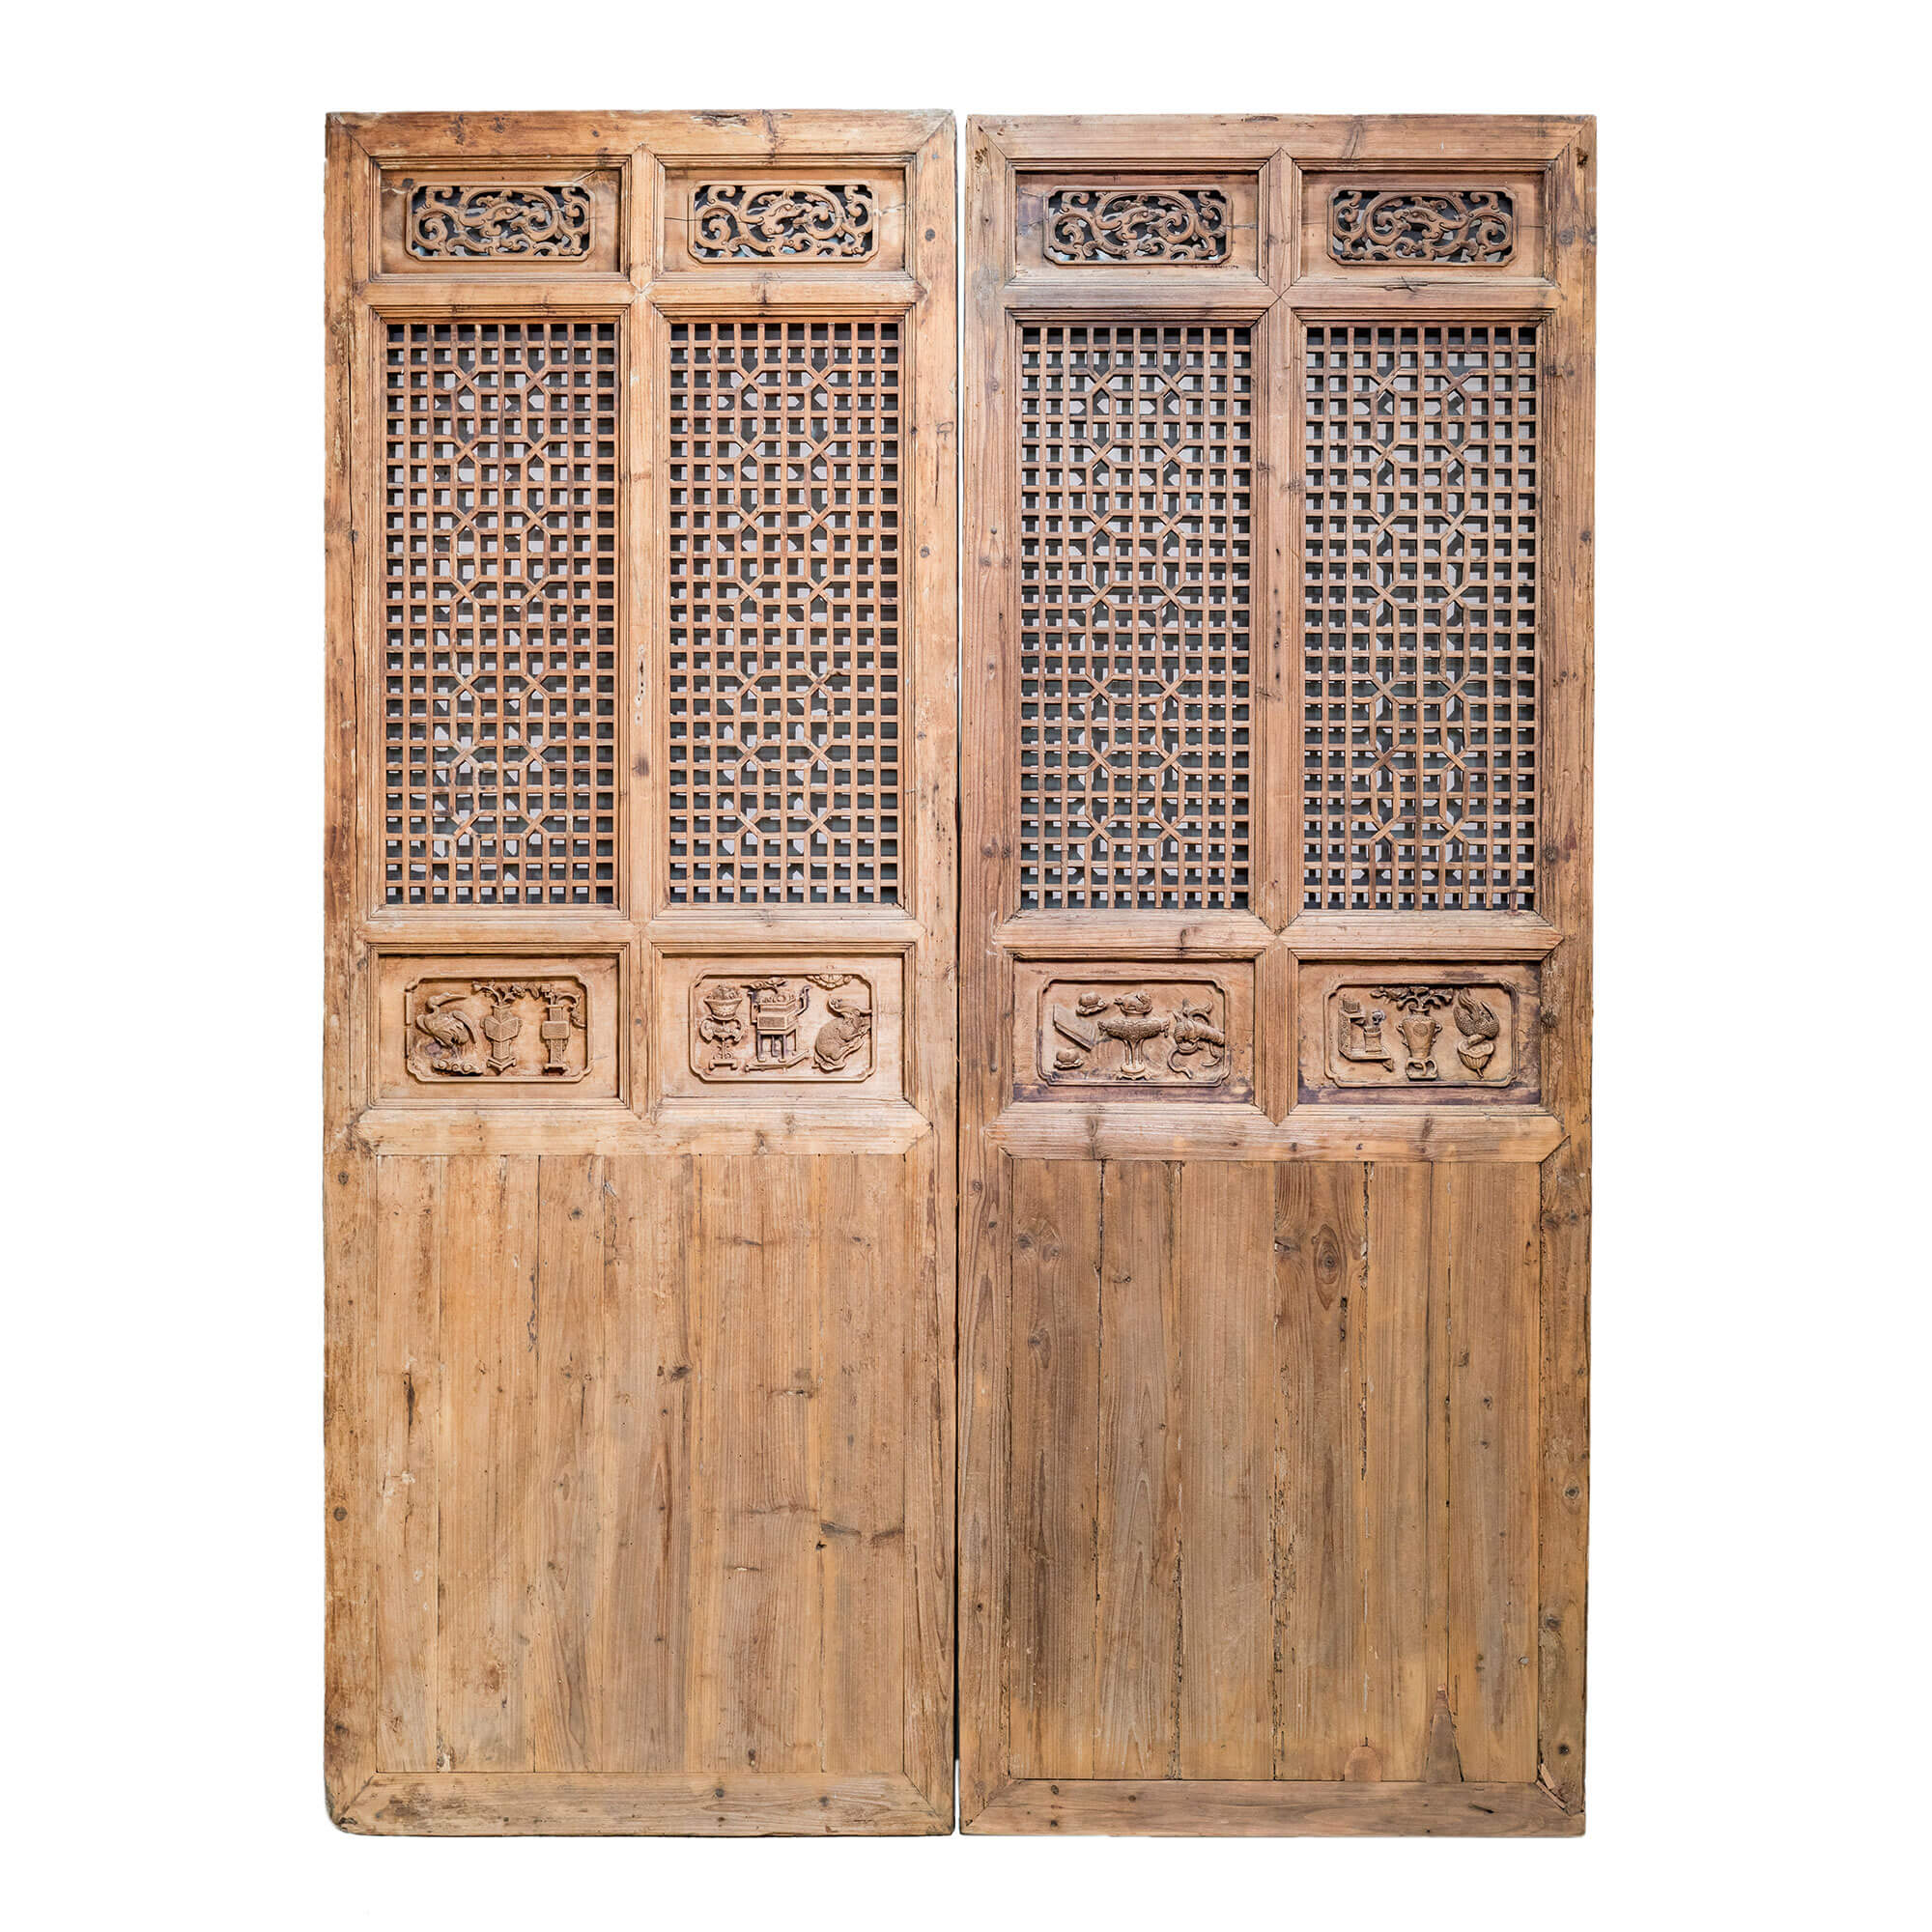 Chinese antique doors